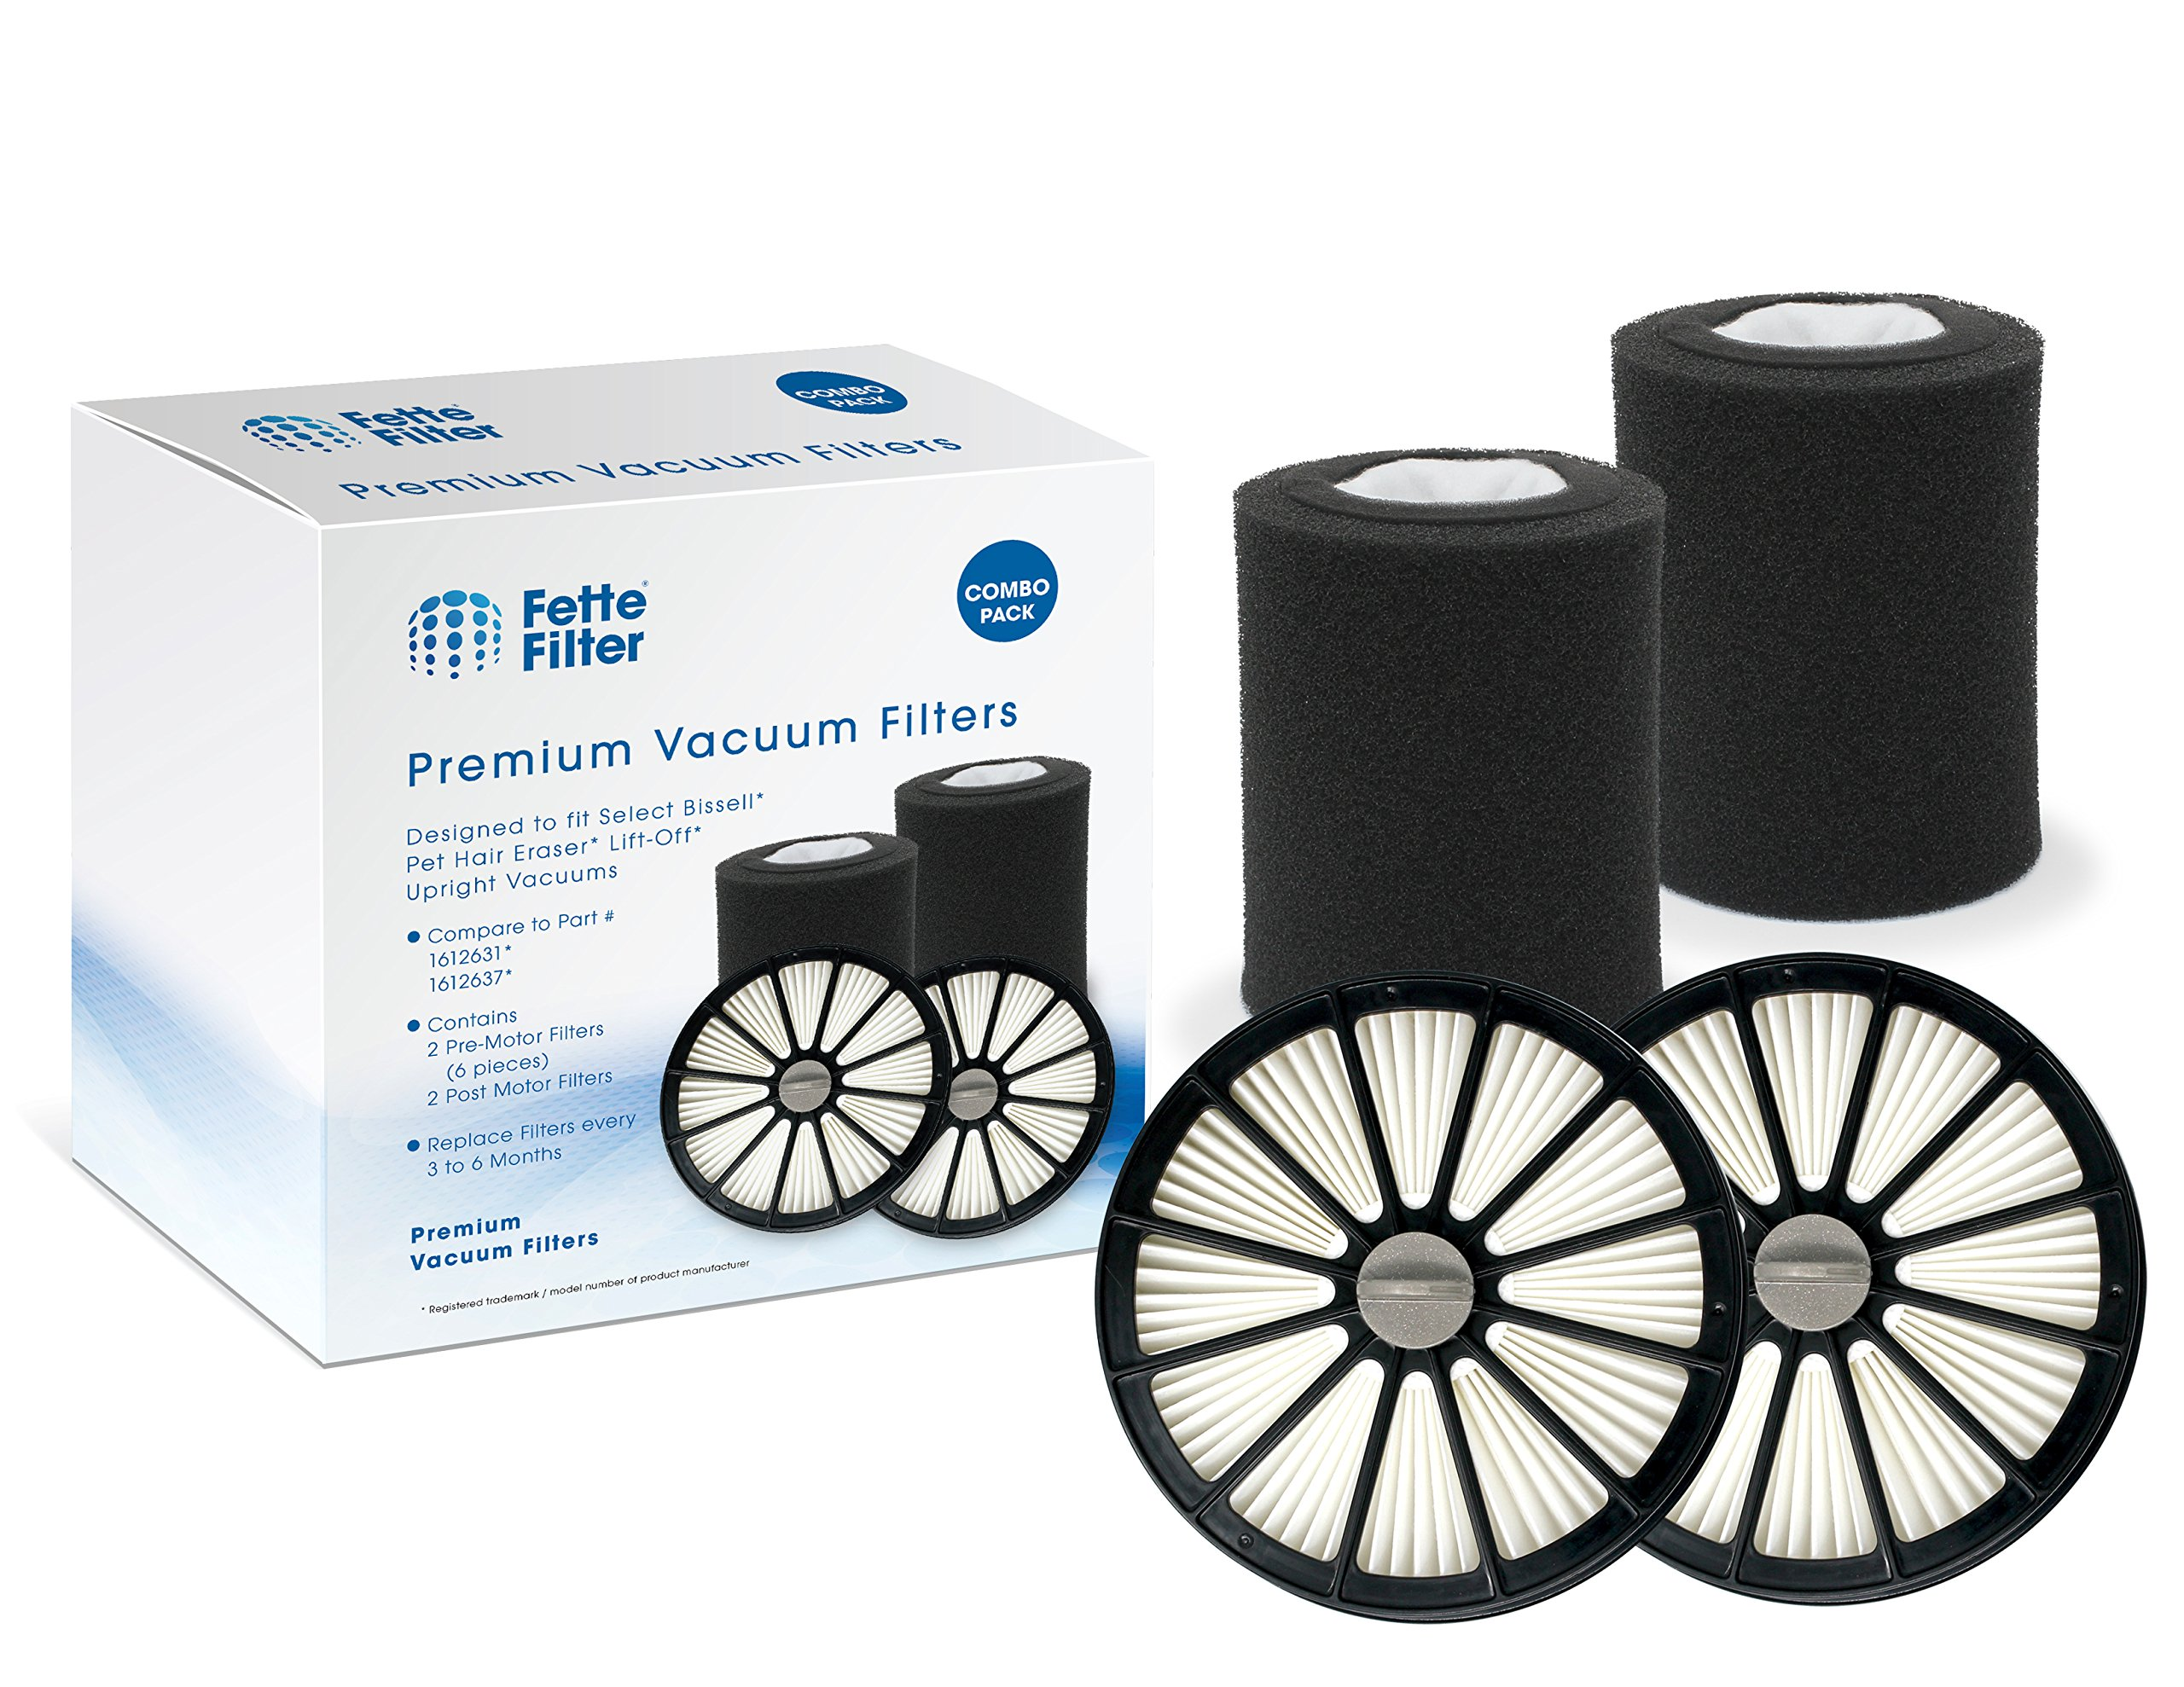 Fette Filter - Vacuum Filter Kit Compatible with Bissell Pet Hair Eraser Lift-Off 20871 & 2087. Compare to Part # 1612637 & 1612631, 161-2637 & 161-2631 Combo Pack by Fette Filter